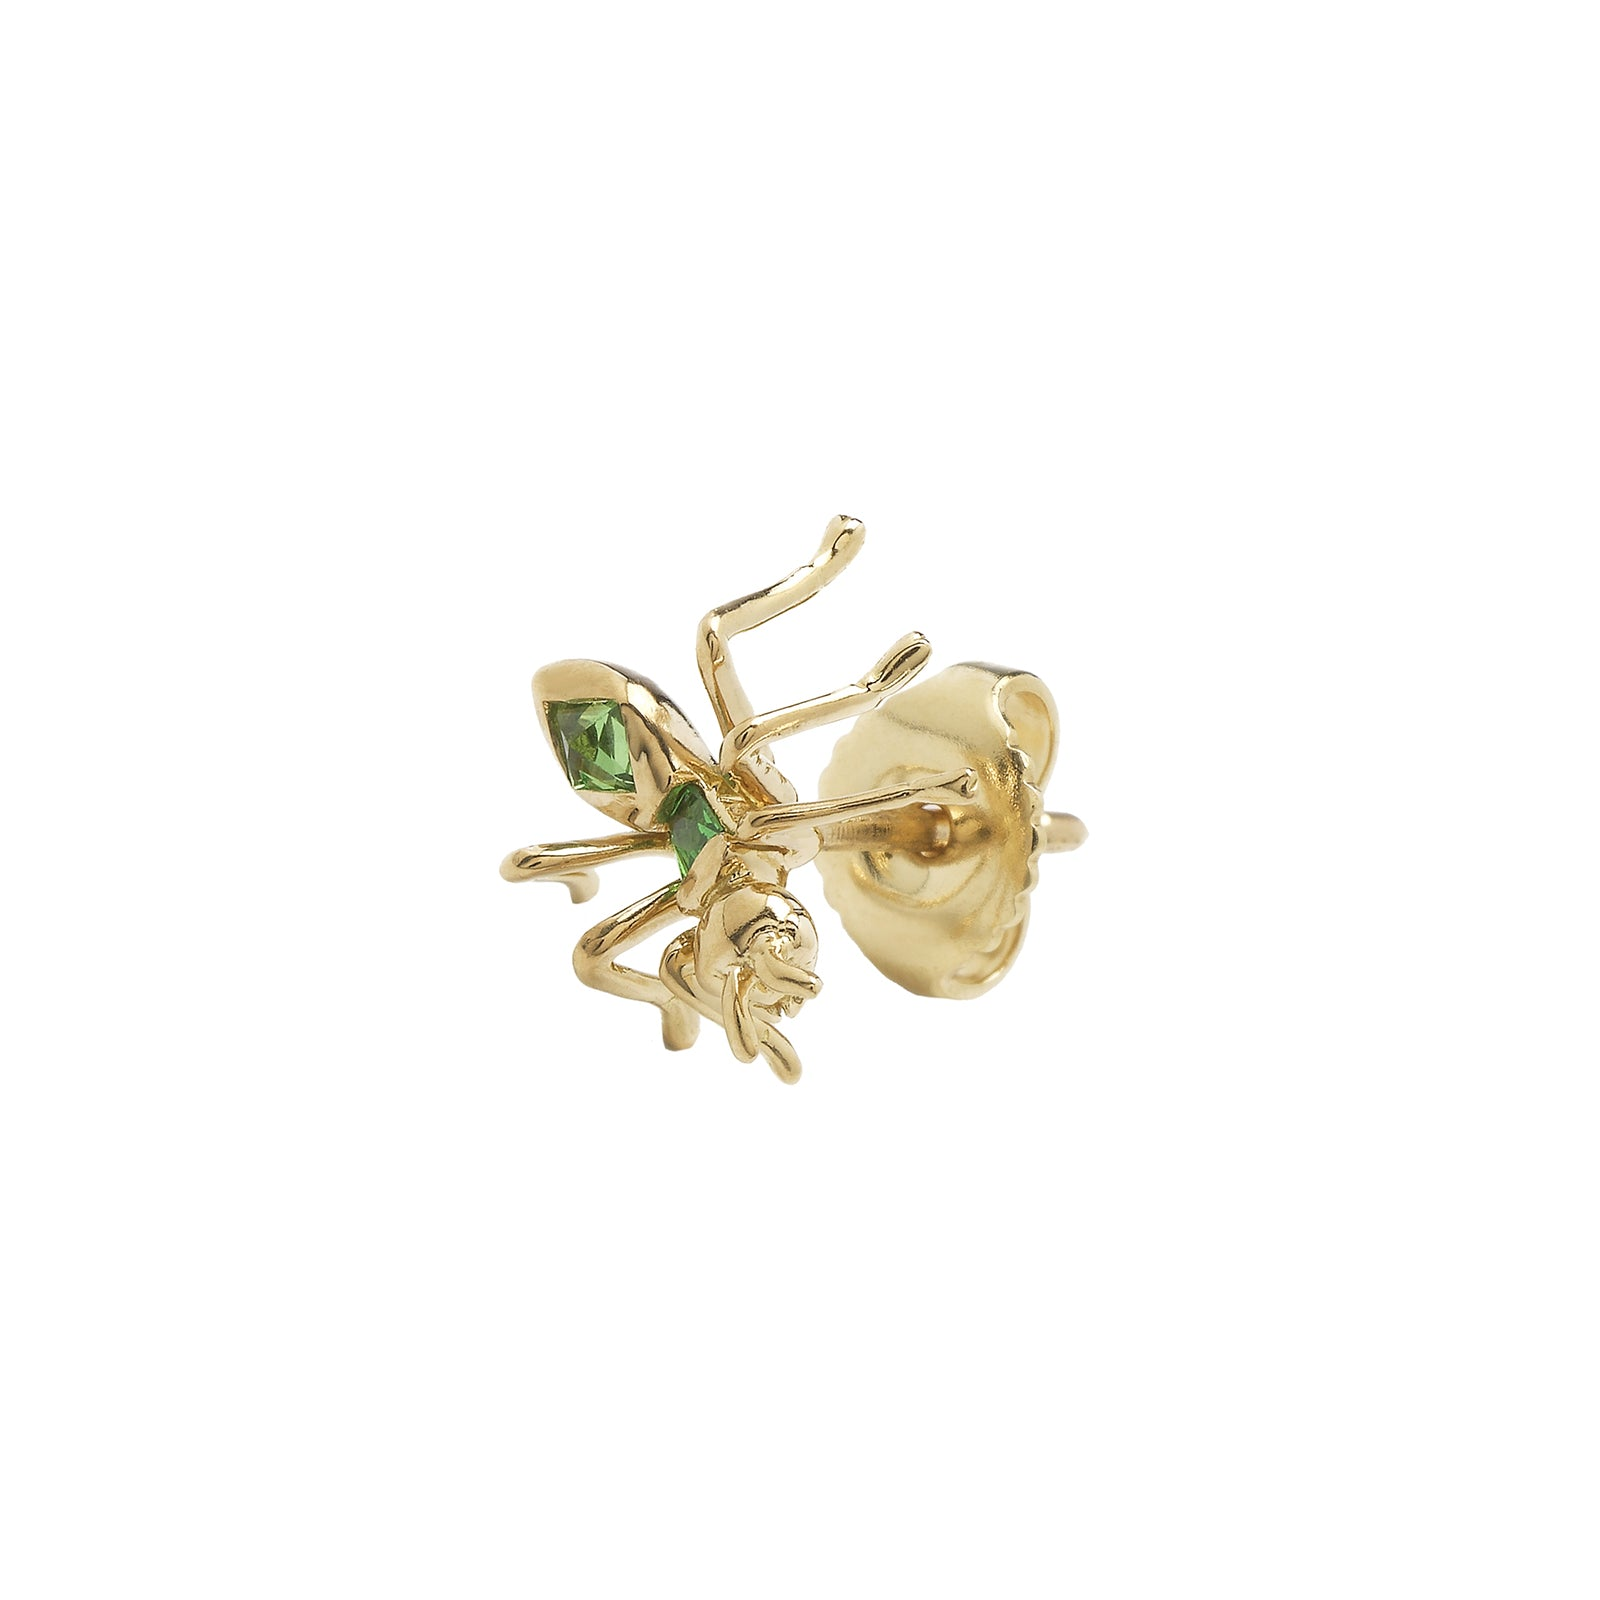 Bibi van der Velden Tsavorite Ant Stud Earrings - Earrings - Broken English Jewelry